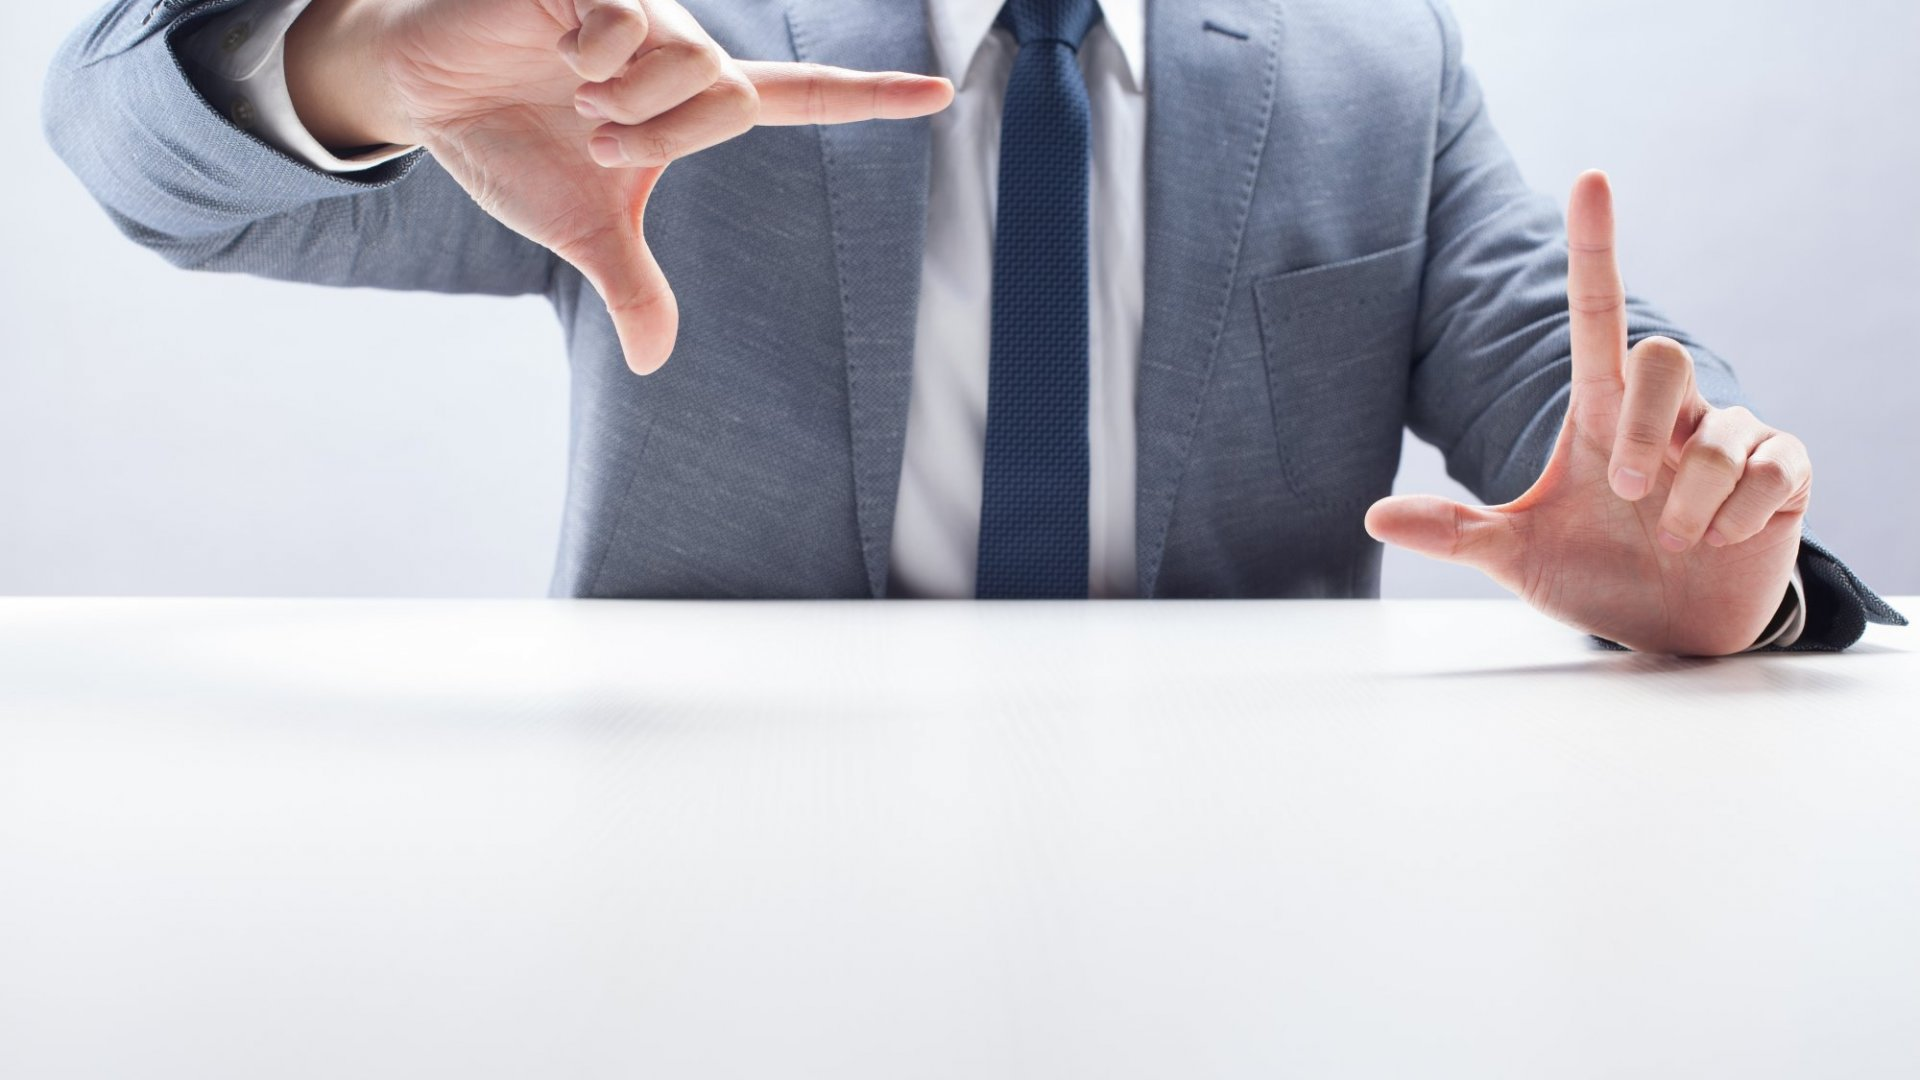 4 Ways CEOs Seek Out Advice From Others